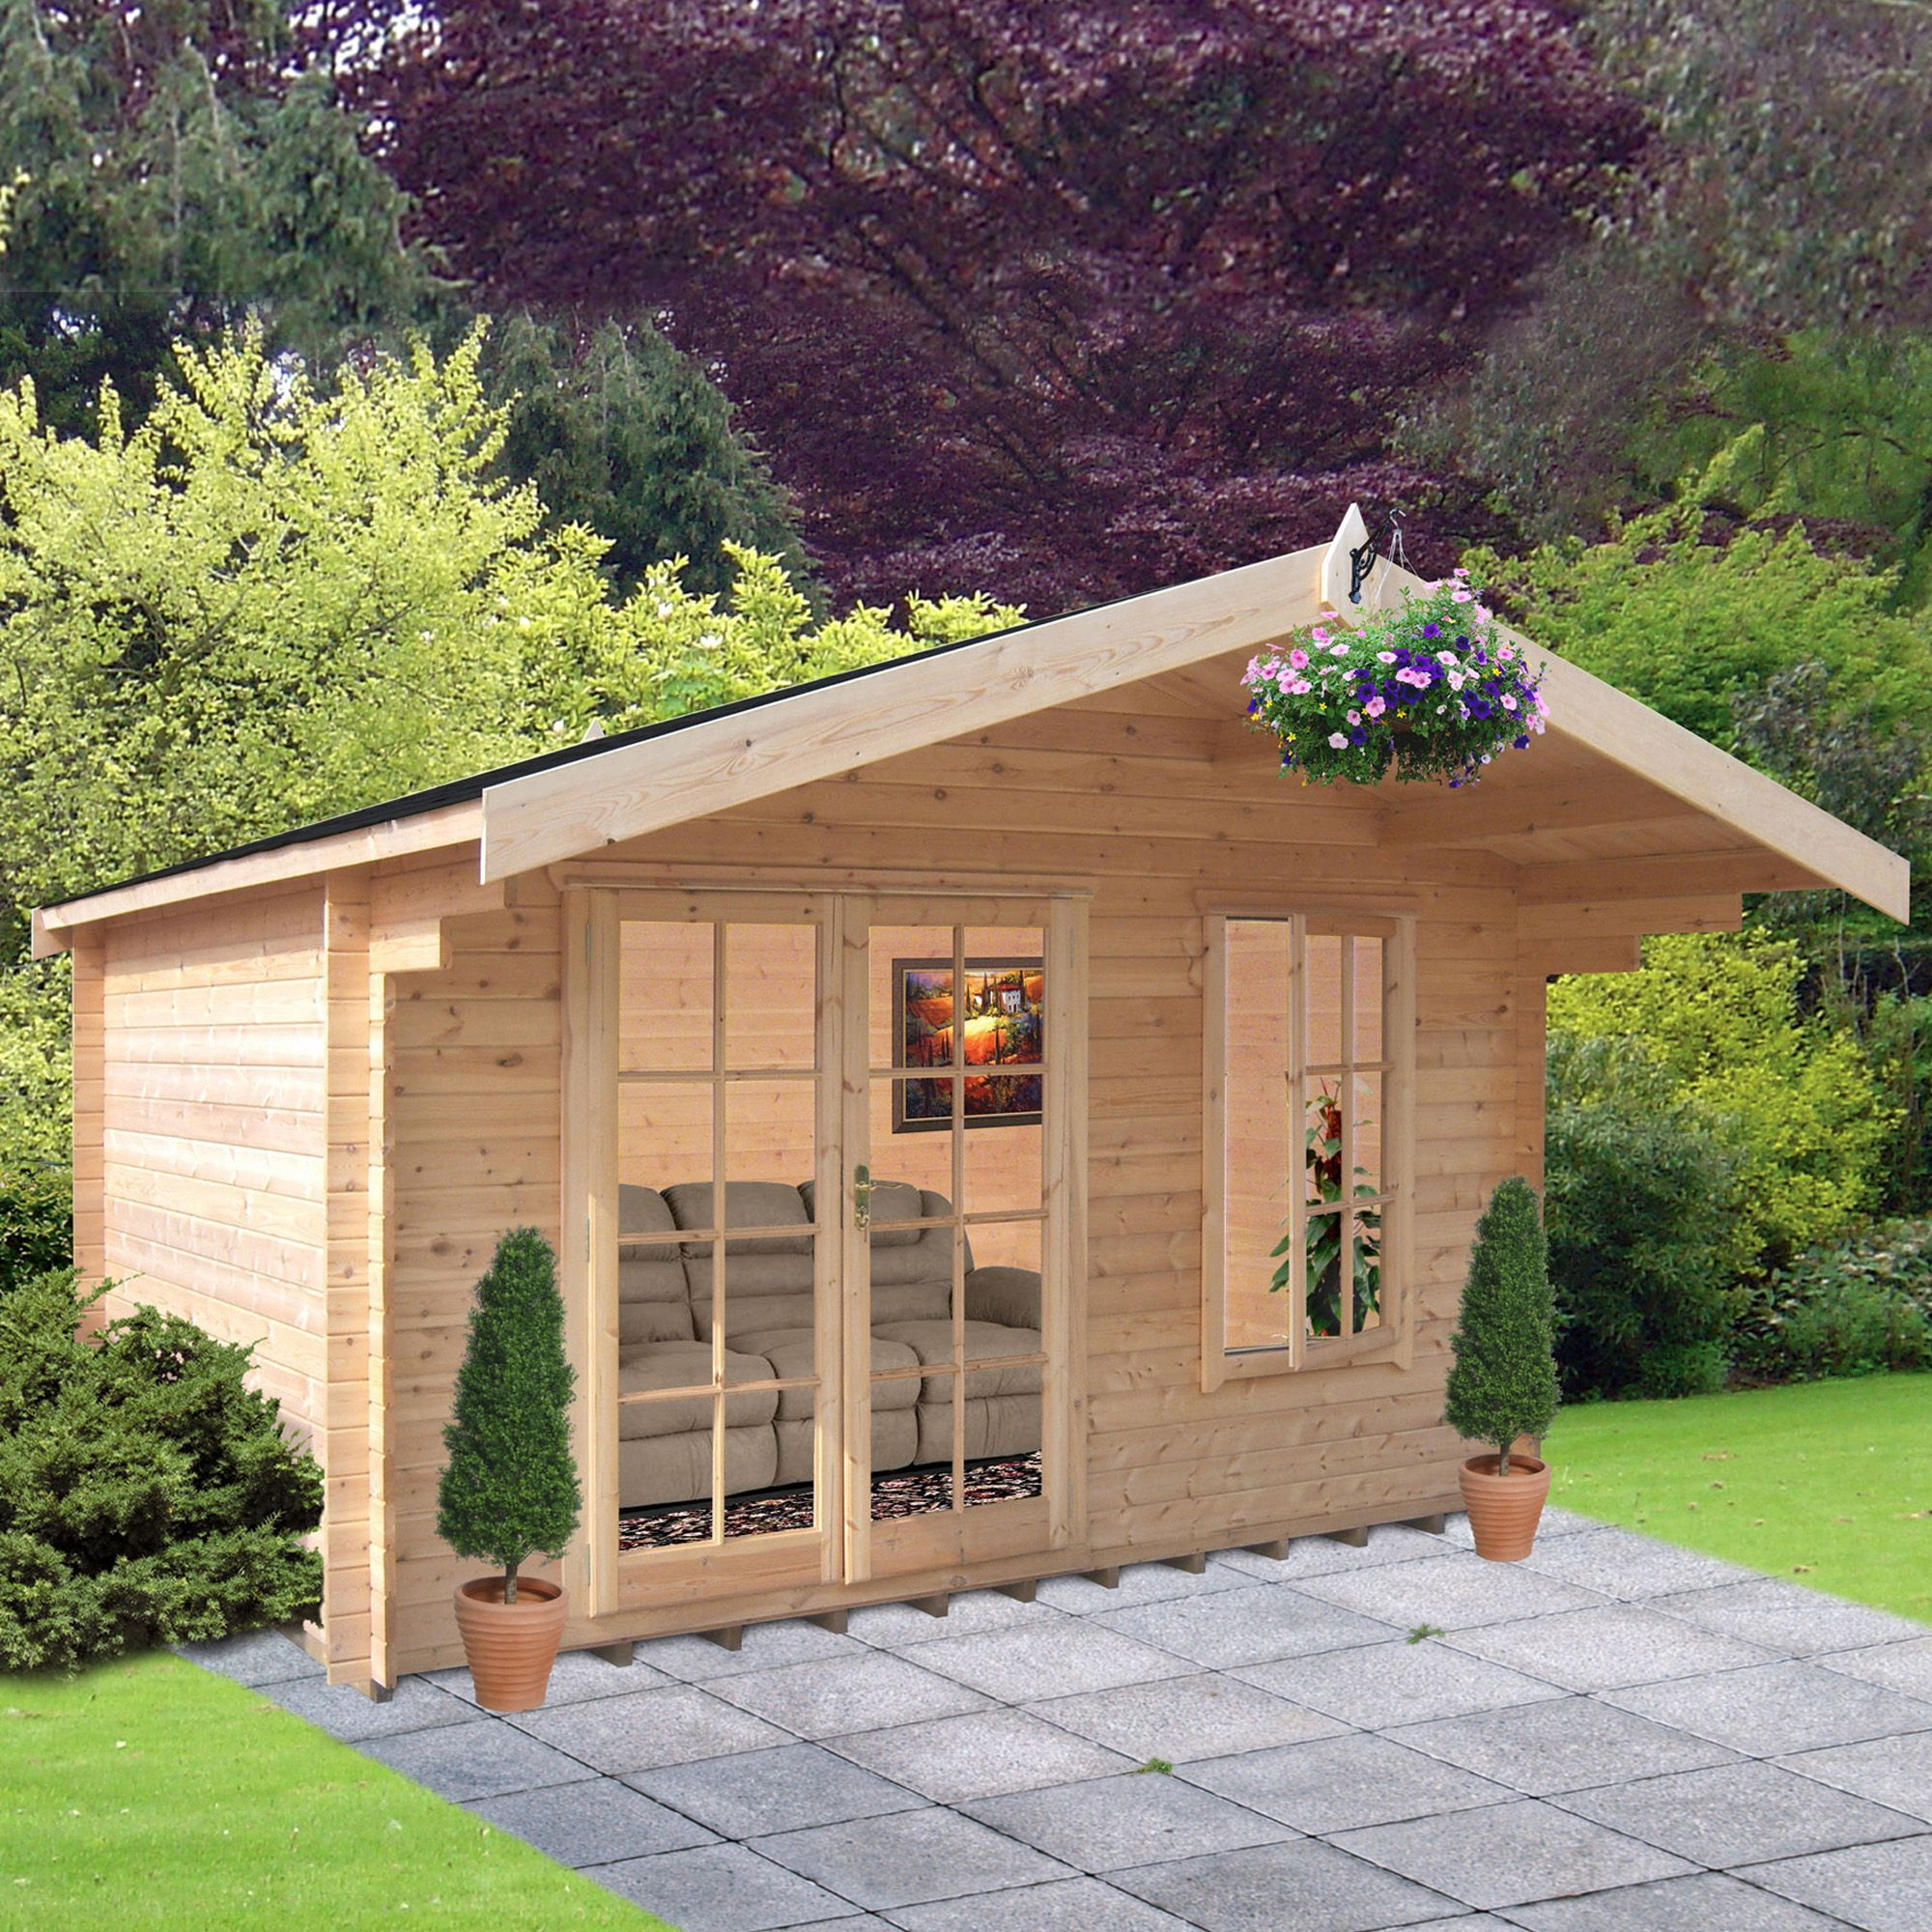 12x10 Cannock 28mm Tongue & Groove Log cabin